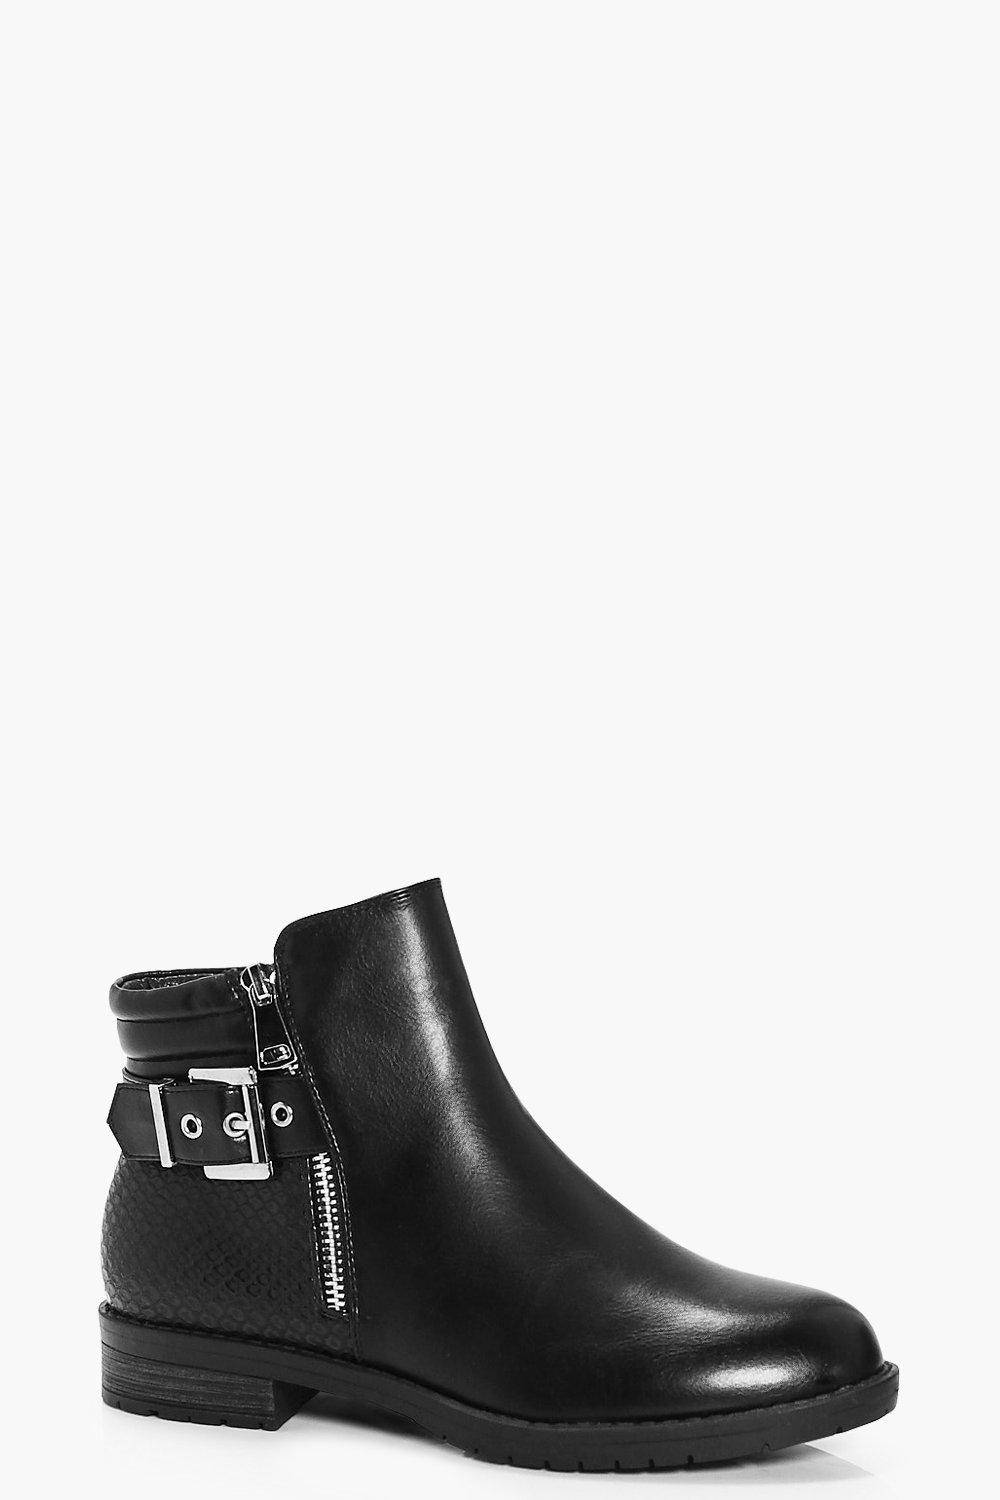 Willow Buckle Trim Chelsea Boot